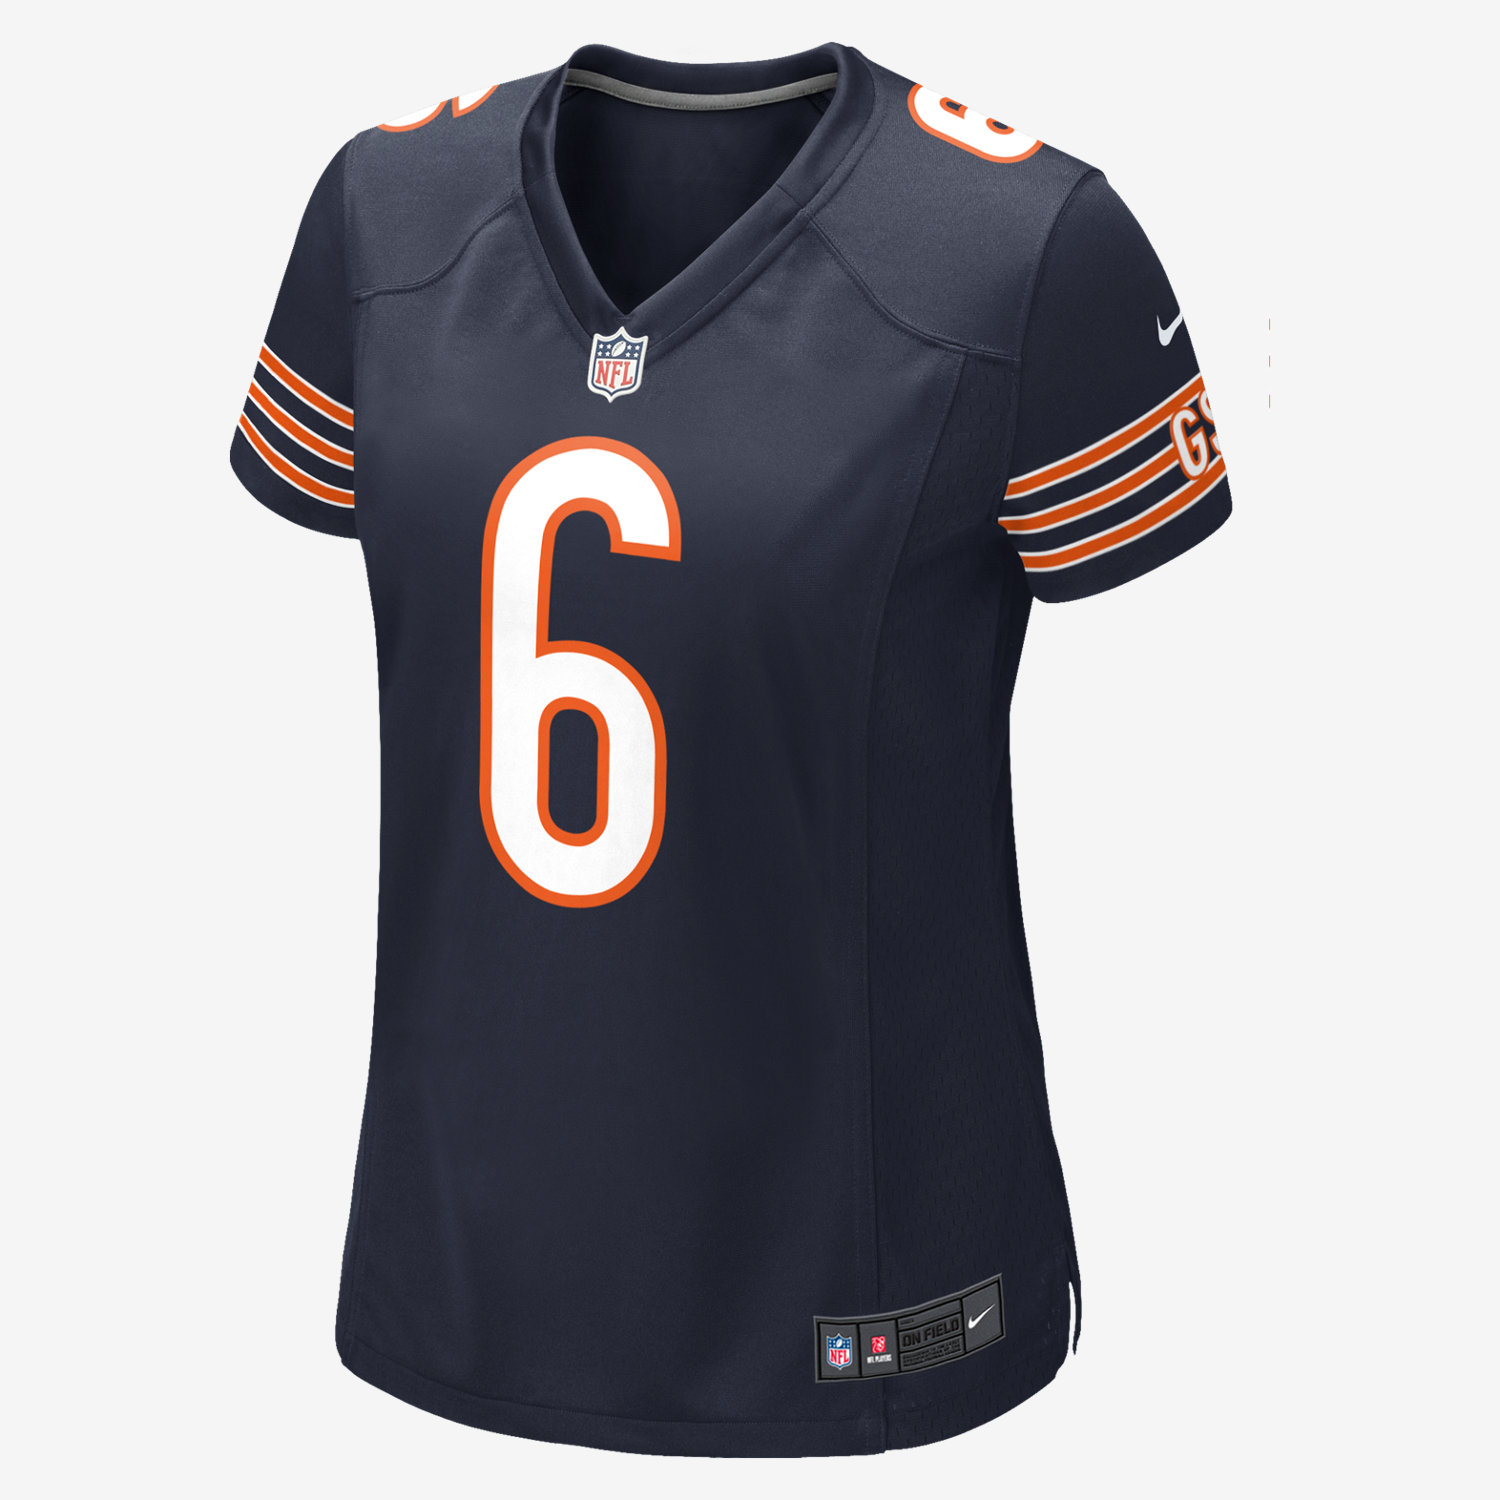 NFL Jersey's Women's Chicago Bears Jay Cutler Nike White Game Jersey